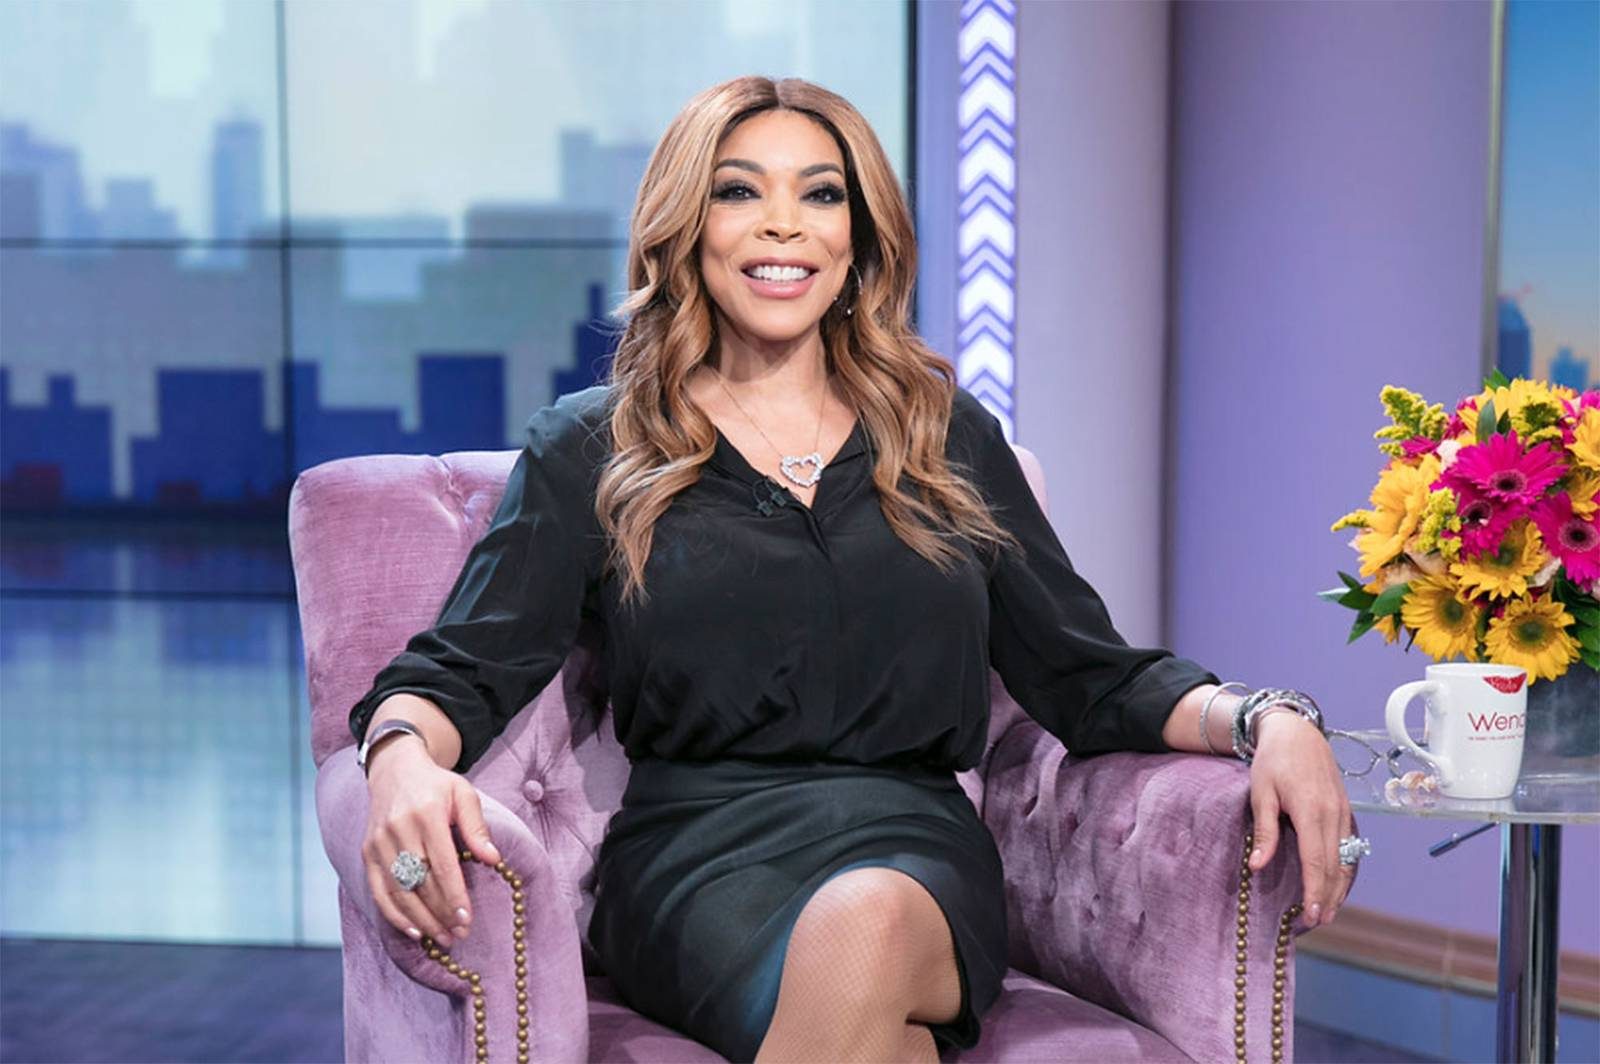 thejasminebrand.com  Wendy Williams has been on hiatus taking time off from work to treat her complications with Graves' disease and hyperthyroidism.Over the weekend, she posted a music video promoting her return.